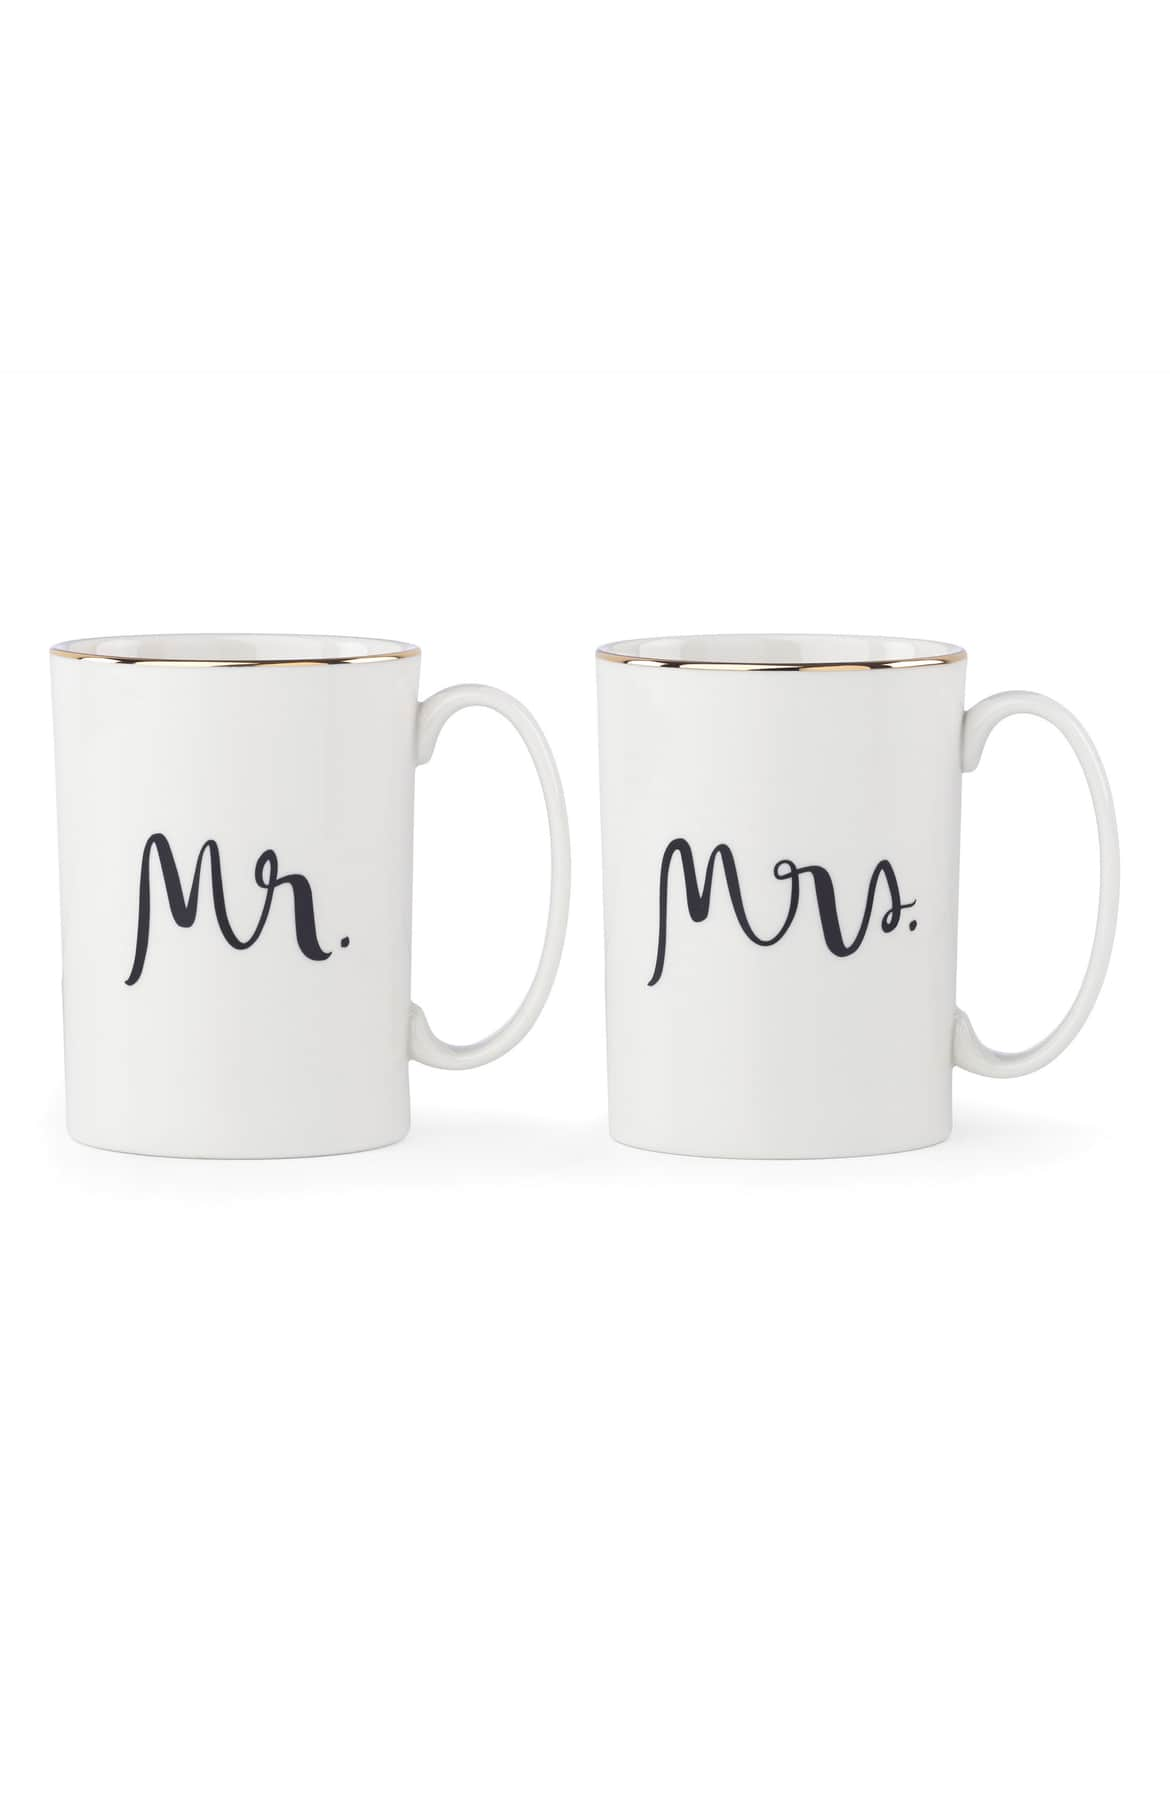 <p>Crafted in glossy porcelain and tipped with shining gilt rims, a pair of charming his-and-hers mugs are perfect when you've brewed coffee for two.{&nbsp;}Price $40.00.{&nbsp;} (Image: Nordstrom){&nbsp;}</p><p></p>